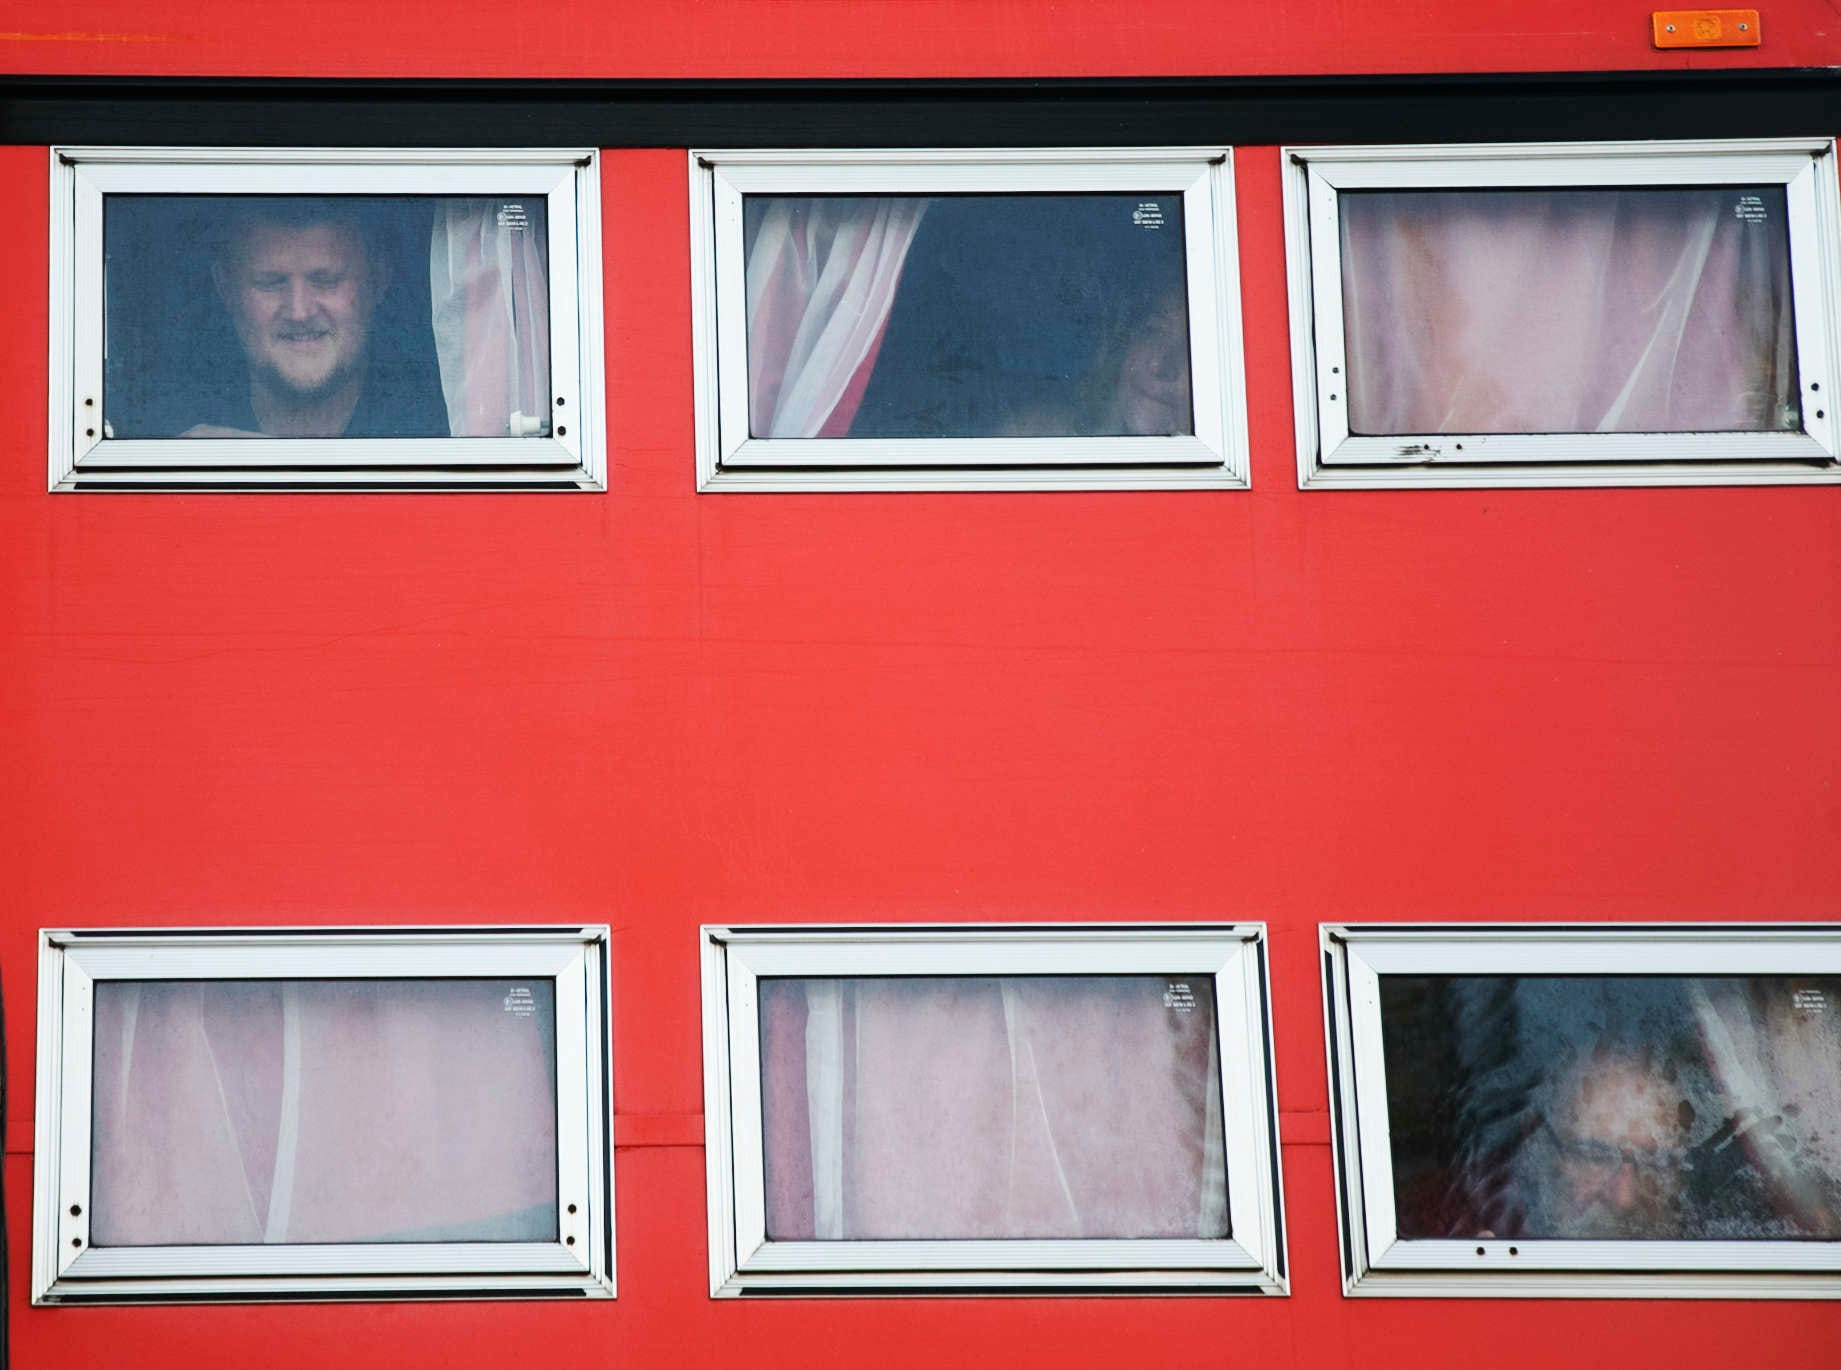 From right to left, Rotel Tours guests Fritz Loescher, tour guide, Birgit Zahn, guest, Siegi Volkner close thier windows after a portrait on the Rotel bus at the Red Coconut R.V. Resort on Fort Myers Beach on 10/16/2018. This tour started in New Jersey and is touring the eastern U.S. Rotel Tours are worldwide.